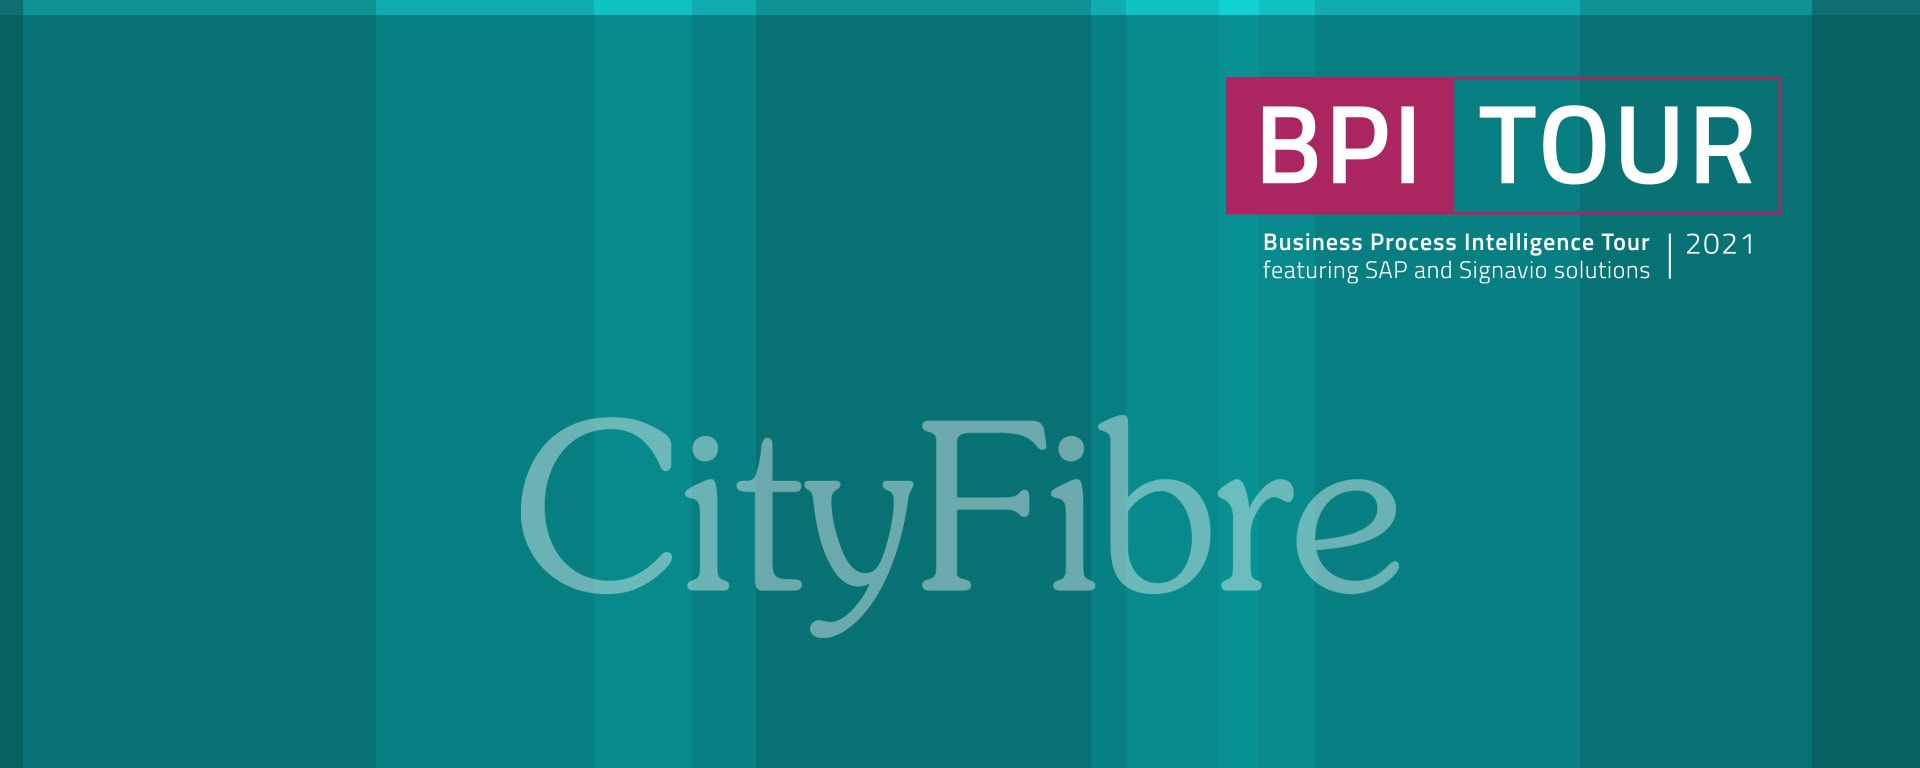 How To Scale Up BPM in a Fast Growth Company - BPI Tour CityFibre